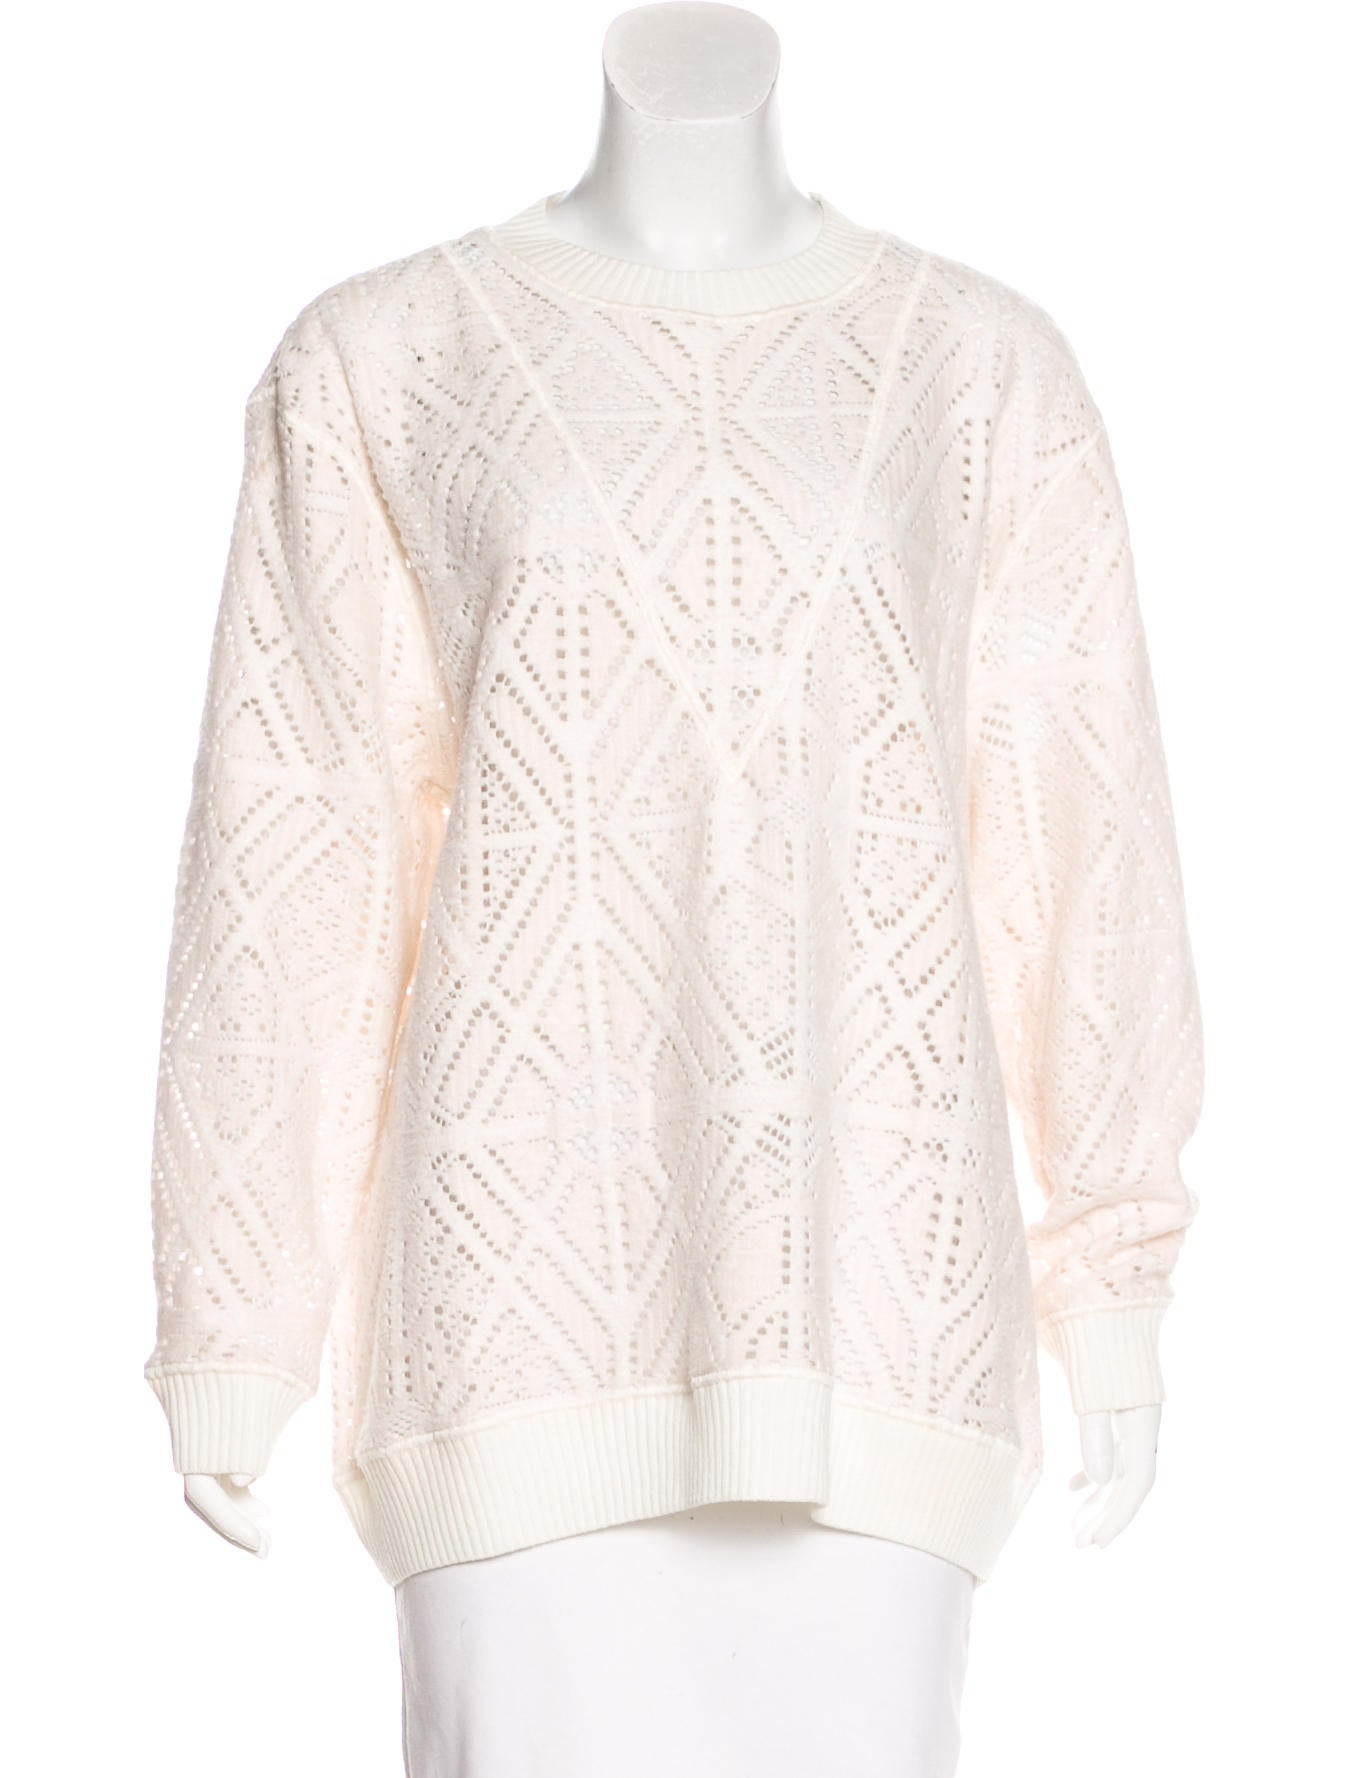 round neck crochet jumper - White Chloé New And Fashion For Sale Footlocker 6aazw